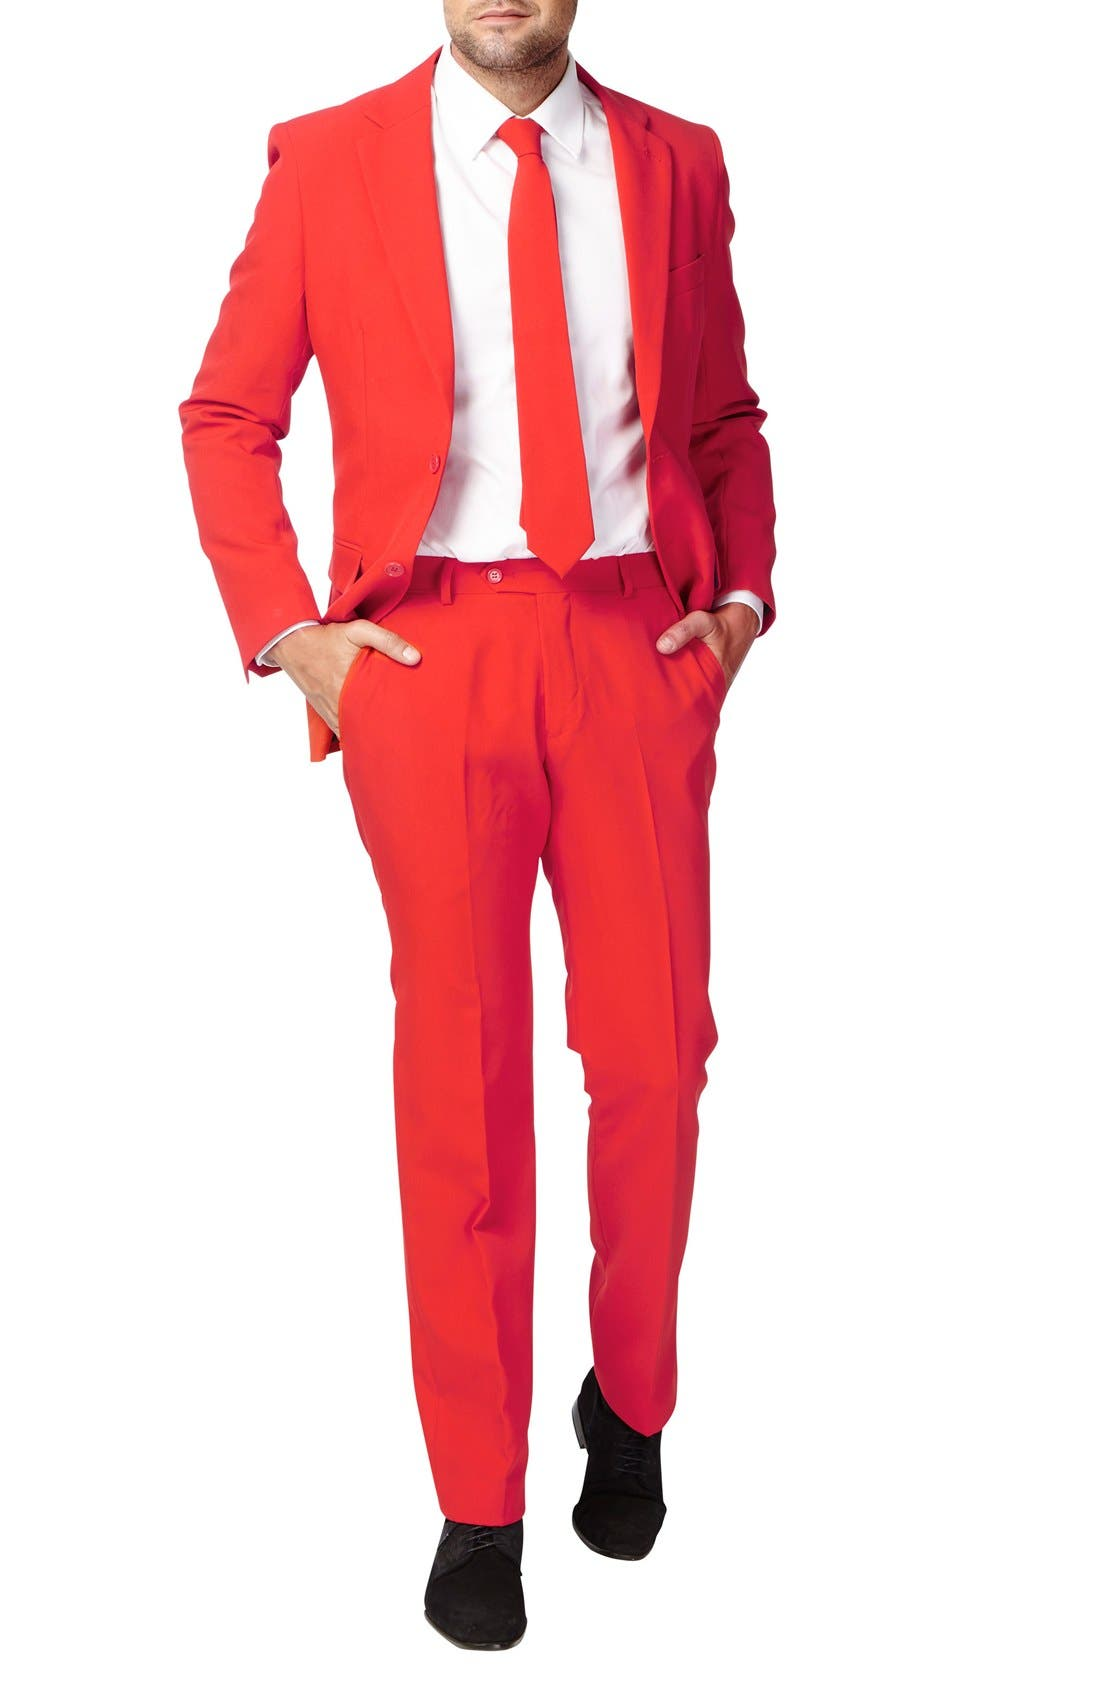 OppoSuit 'Red Devil' Trim Fit Two-Piece Suit with Tie,                         Main,                         color, Medium Red